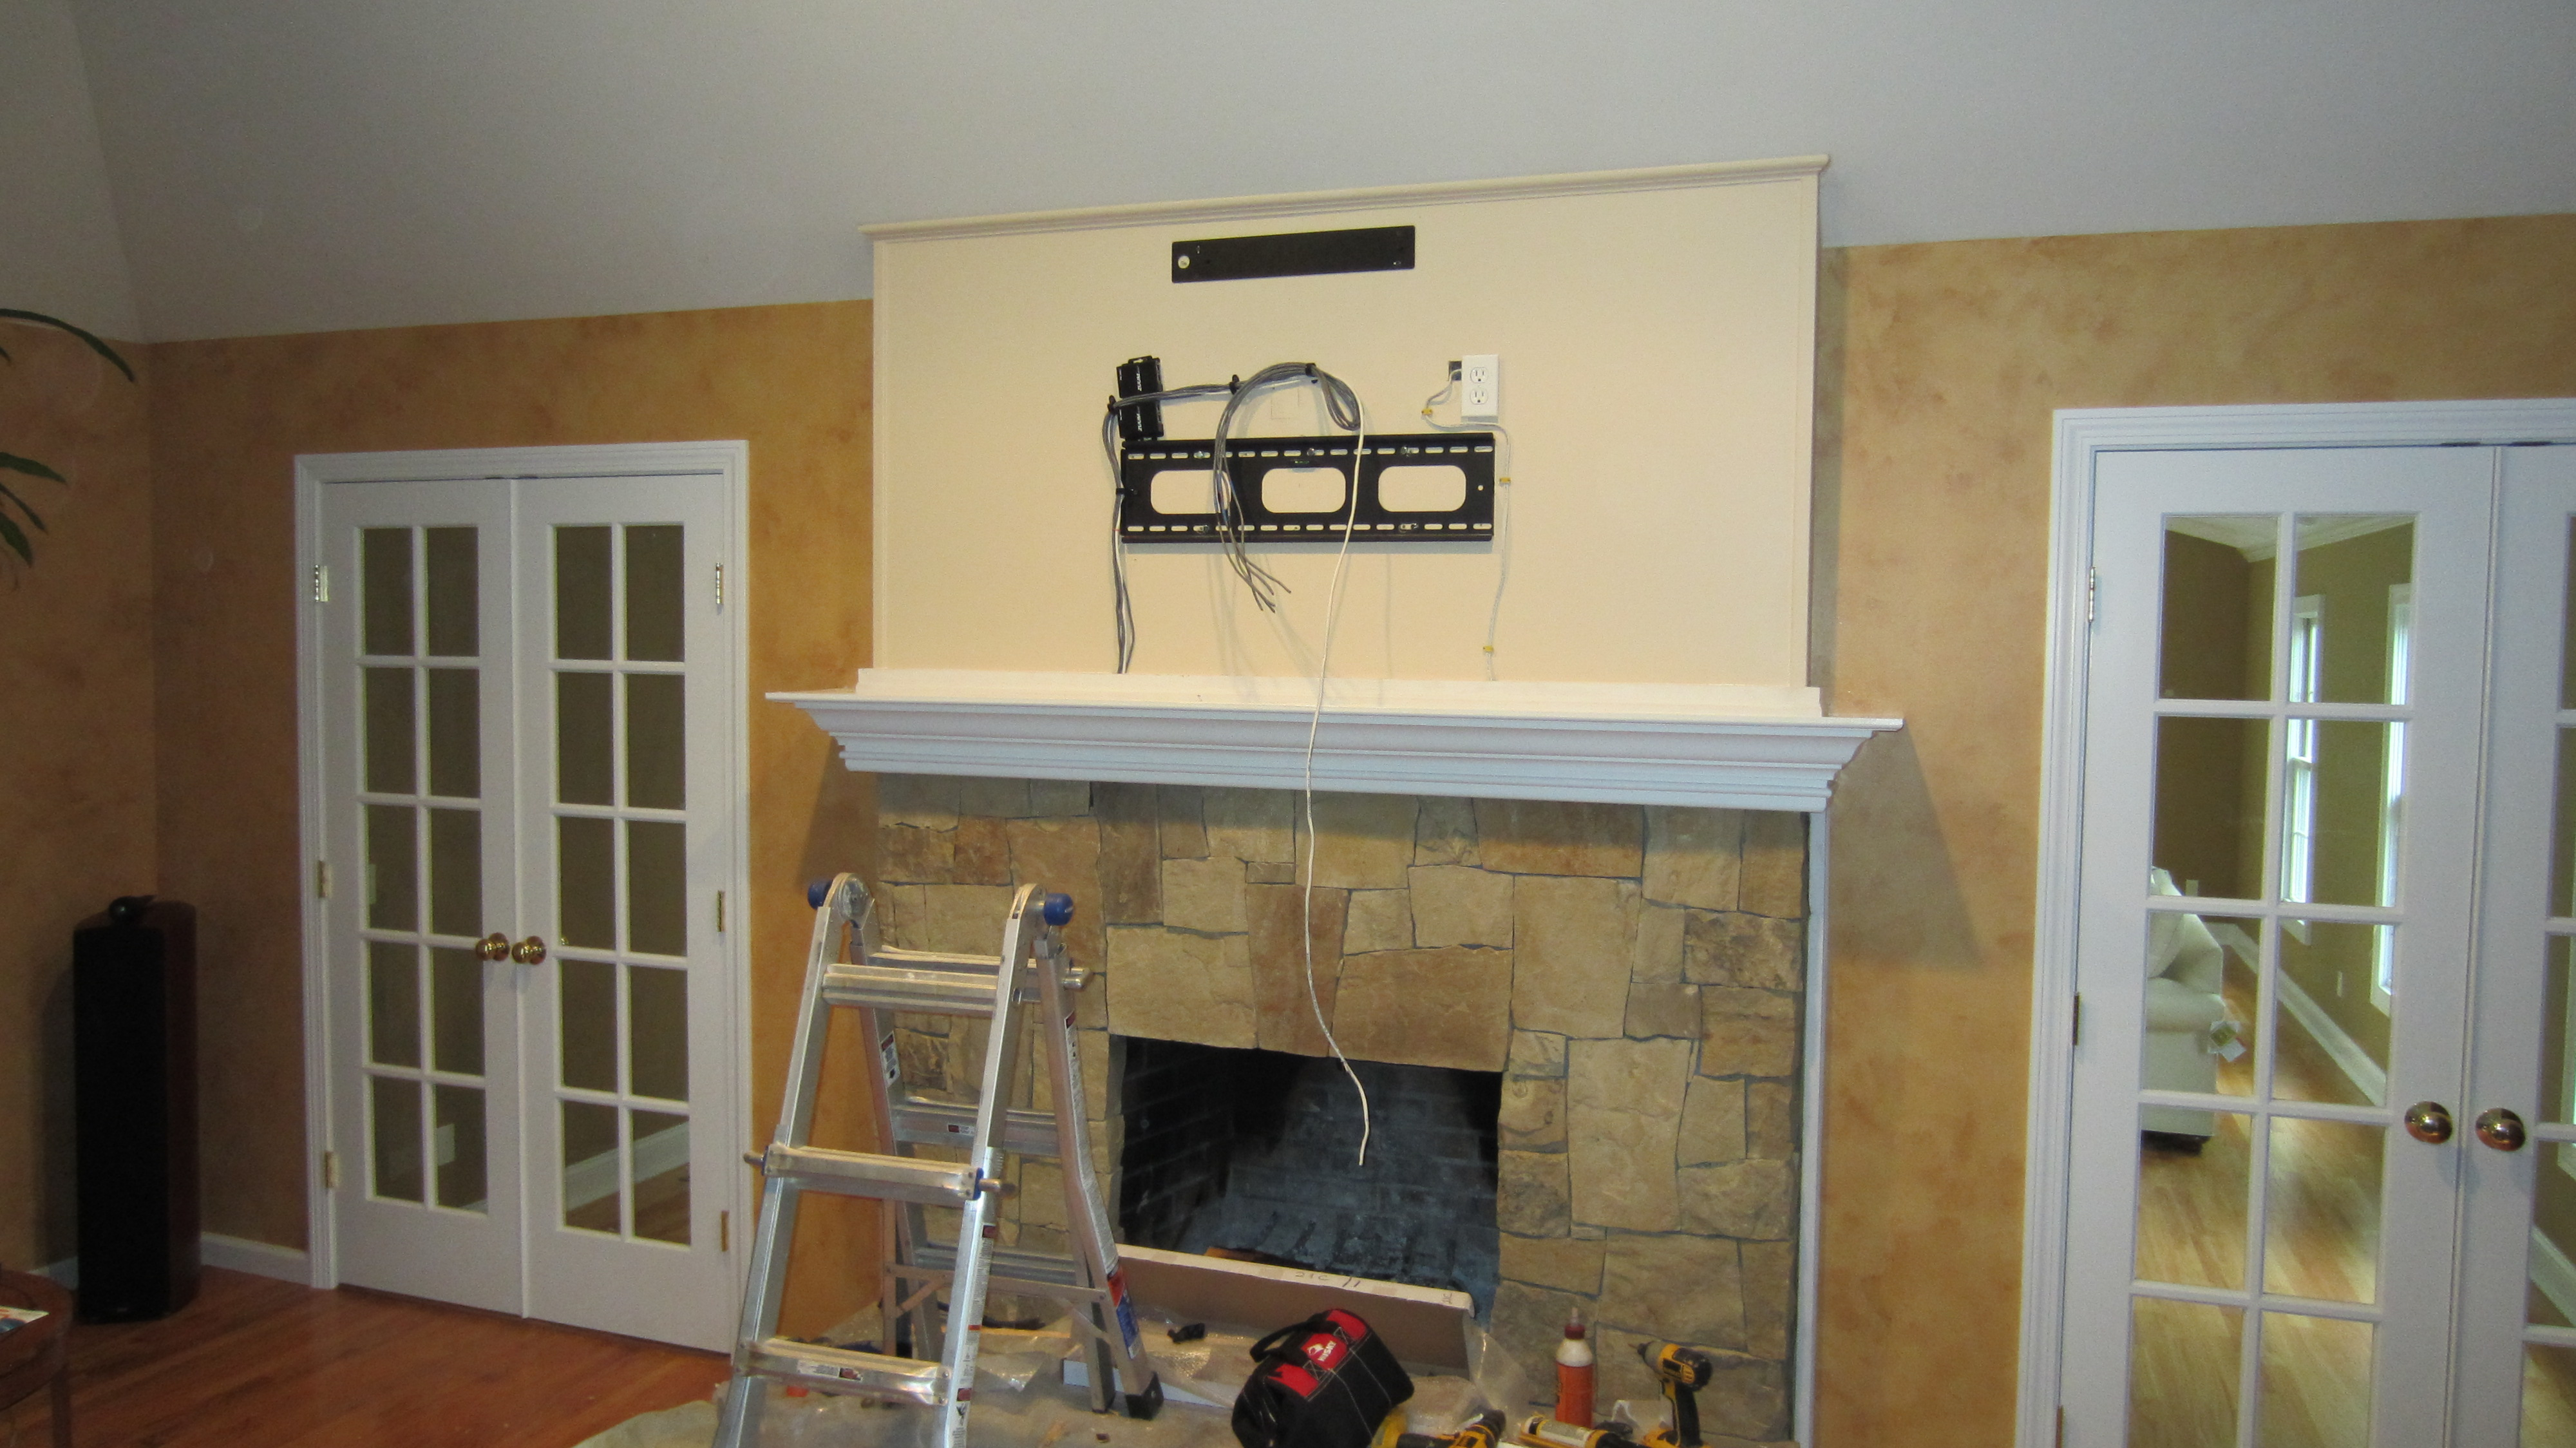 norwalk ct mount tv above fireplace home theater installation. Black Bedroom Furniture Sets. Home Design Ideas